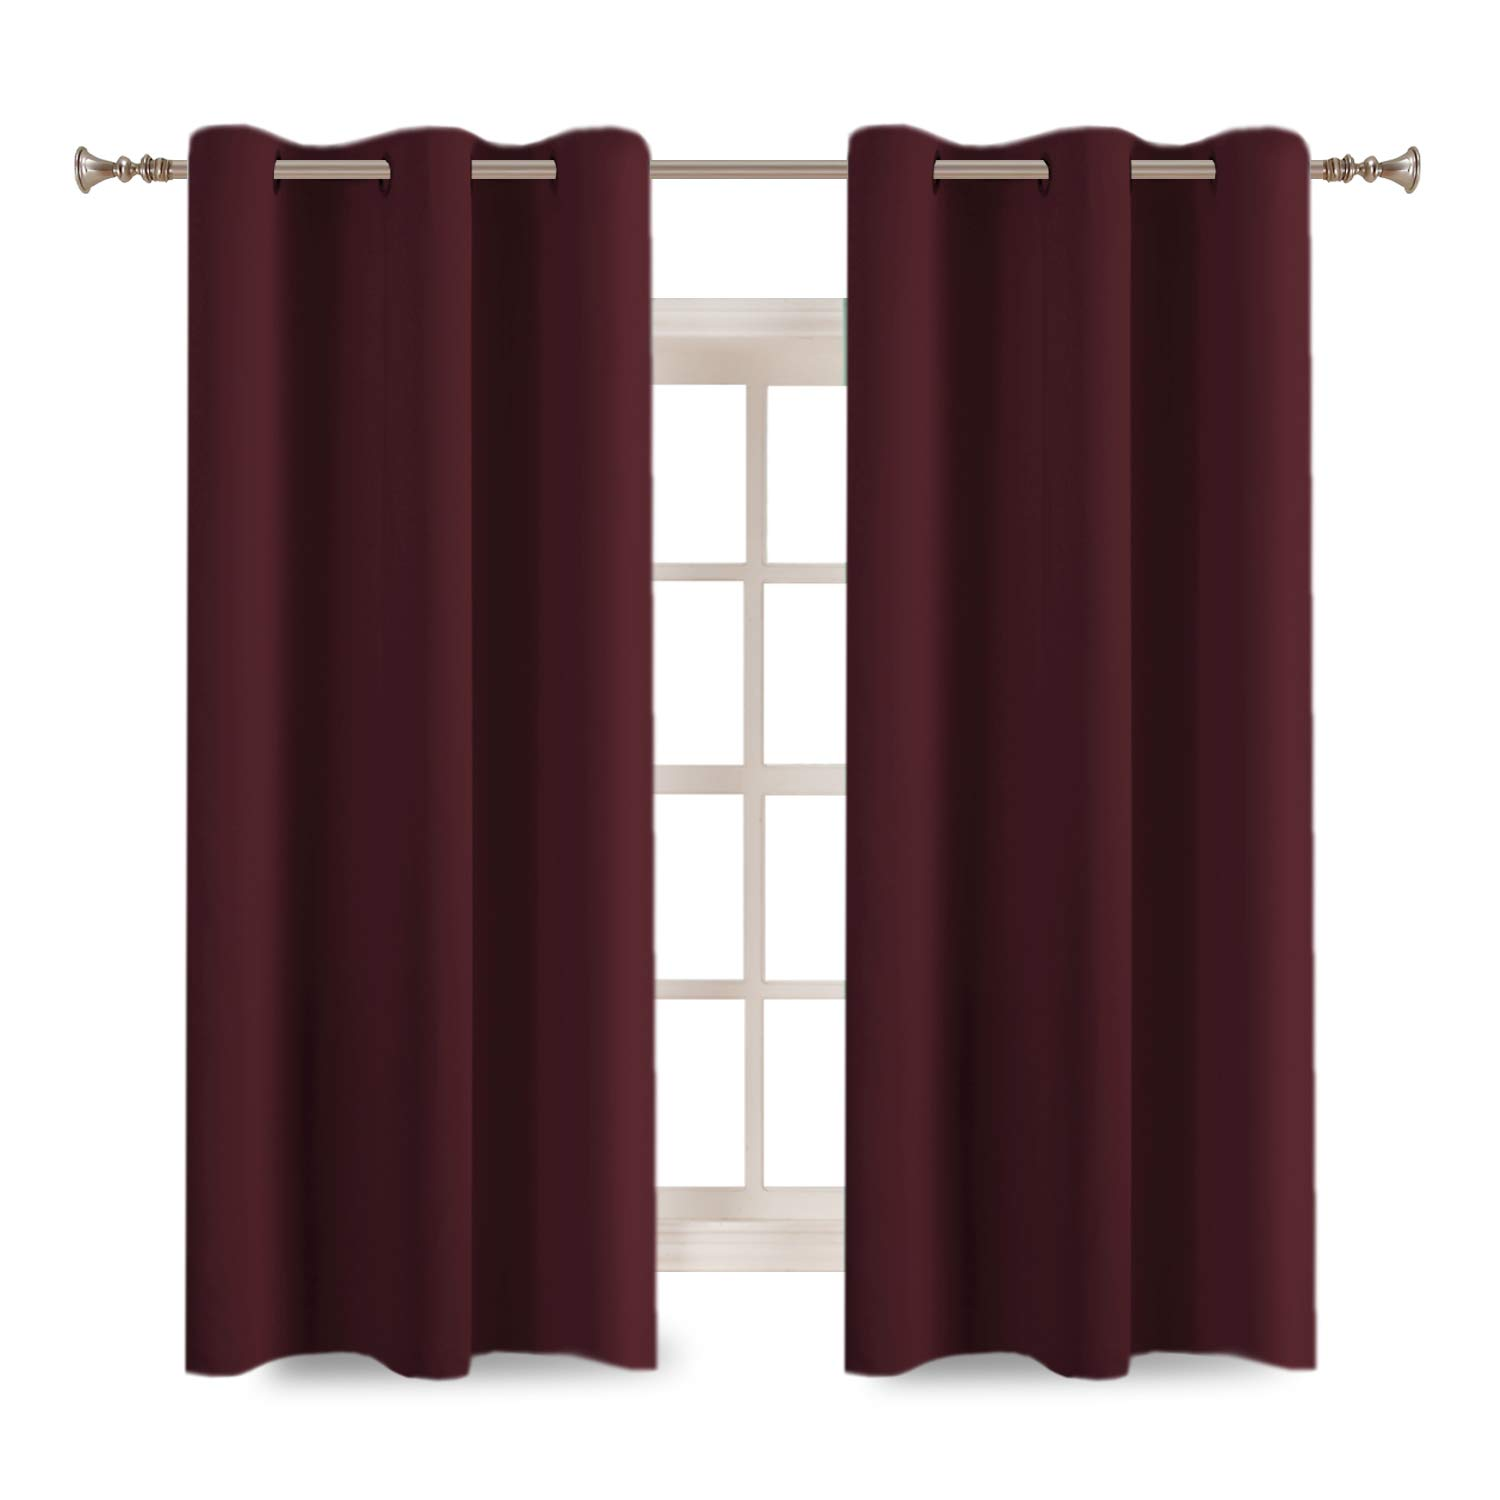 "Turquoize Solid Blackout Drapes, Room Darkening, Roby Wine, Themal Insulated, Grommet/Eyelet Top, Nursery/Living Room Curtains Each Panel 42"" W x 63"" L (Set of 2 Panels)"